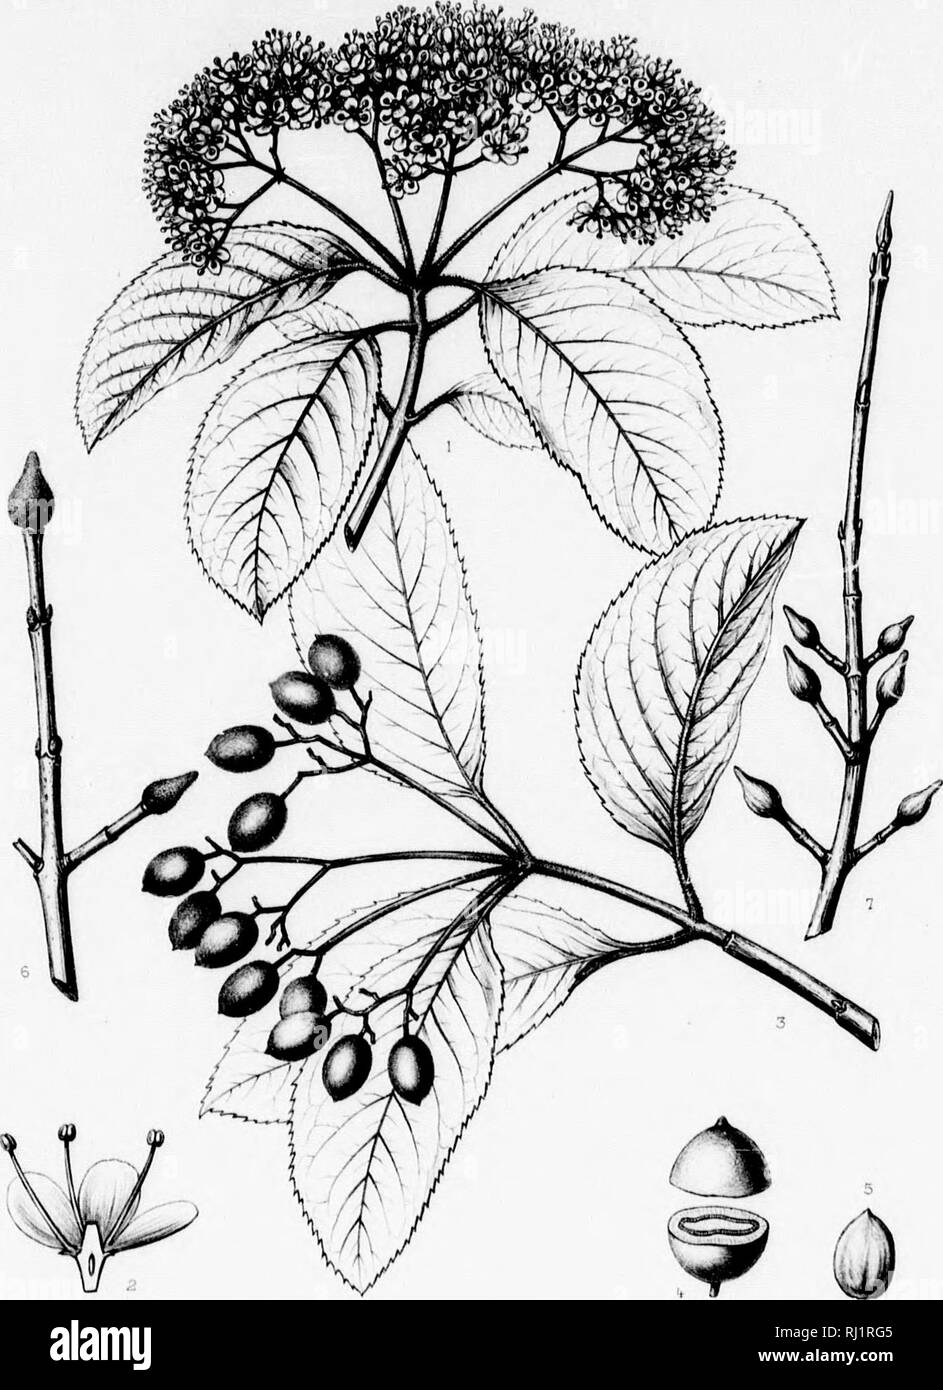 """. The silva of North America [microform] : a description of the tree which grow naturally in North America exclusive of Mexico. Trees; Trees; Arbres; Arbres. CAPKIPOLIACKiR ' bottom-laiuLt, and is oiiiity, Florida, south- imon and most bettuti- ;li itn grpjit cl listers of us its largest size ii nuri in 1883, and Itait Lh Atlantic and eajiloni GuK uiaaA, the Indian Torritm'j. )iu«ll, Julj 27, 1892. ne, 1878. U'vt^ii in Cherokre Connljr, V W hit ford. ( ro»t« //t* Silva oF North America Tab DCCX. f^' J"""".' Ktatjn- ciM- VIBURNUM RUFIDULUM R:il J^Ki^nne j-c A }it.'rrf44.r ./^/•rtr Jnif* .//hf Stock Photo"""